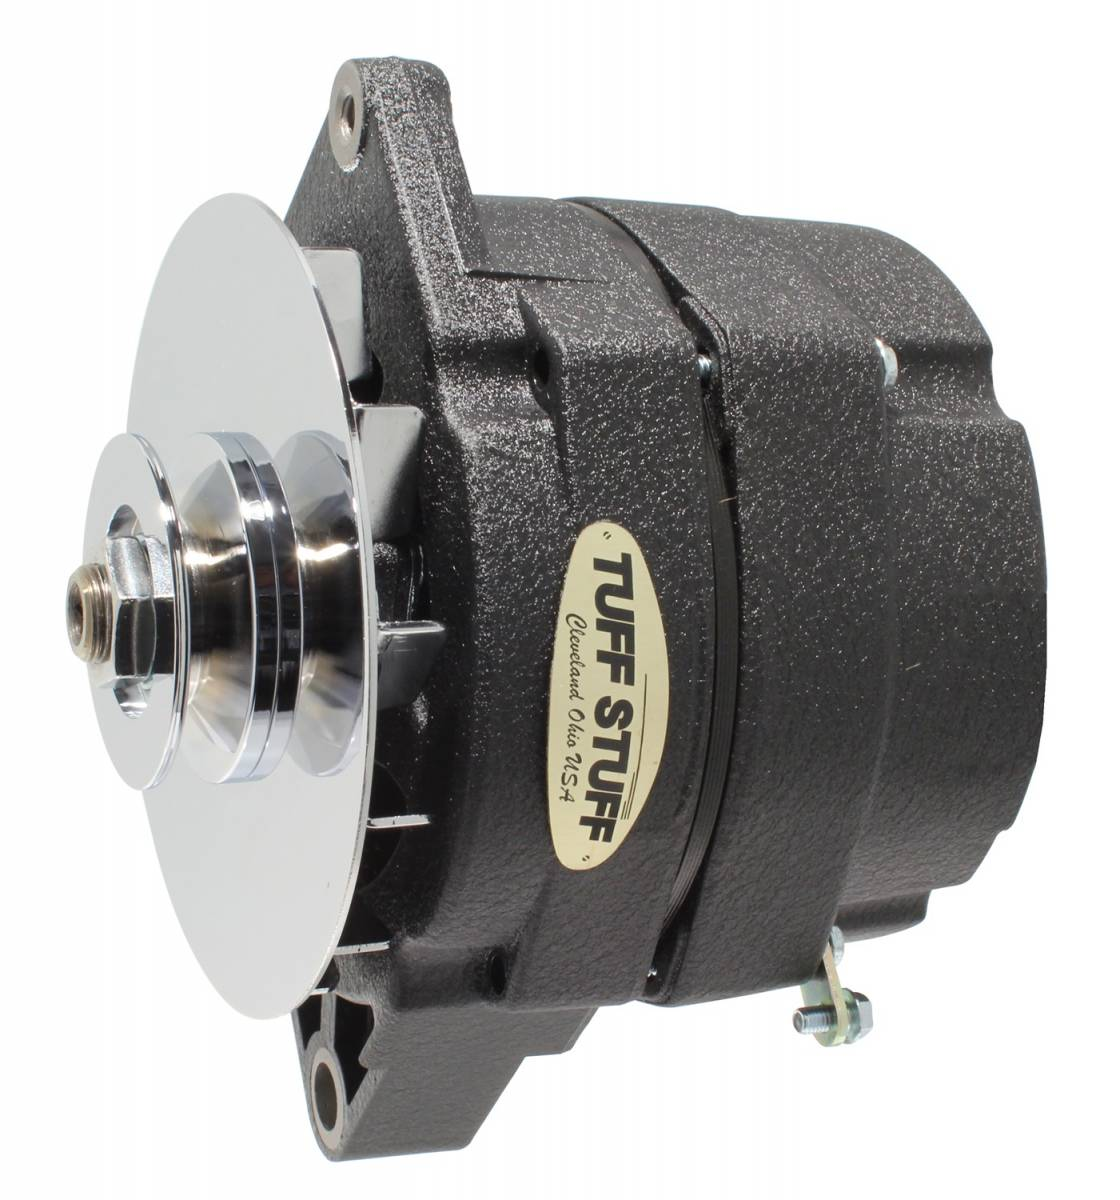 Tuff Stuff Performance - Alternator 140 AMP OEM Wire 10si Case V Groove Pulley External Regulator Black Wrinkle Must Be Used With An External Solid State Voltage Regulator 7102NKBW